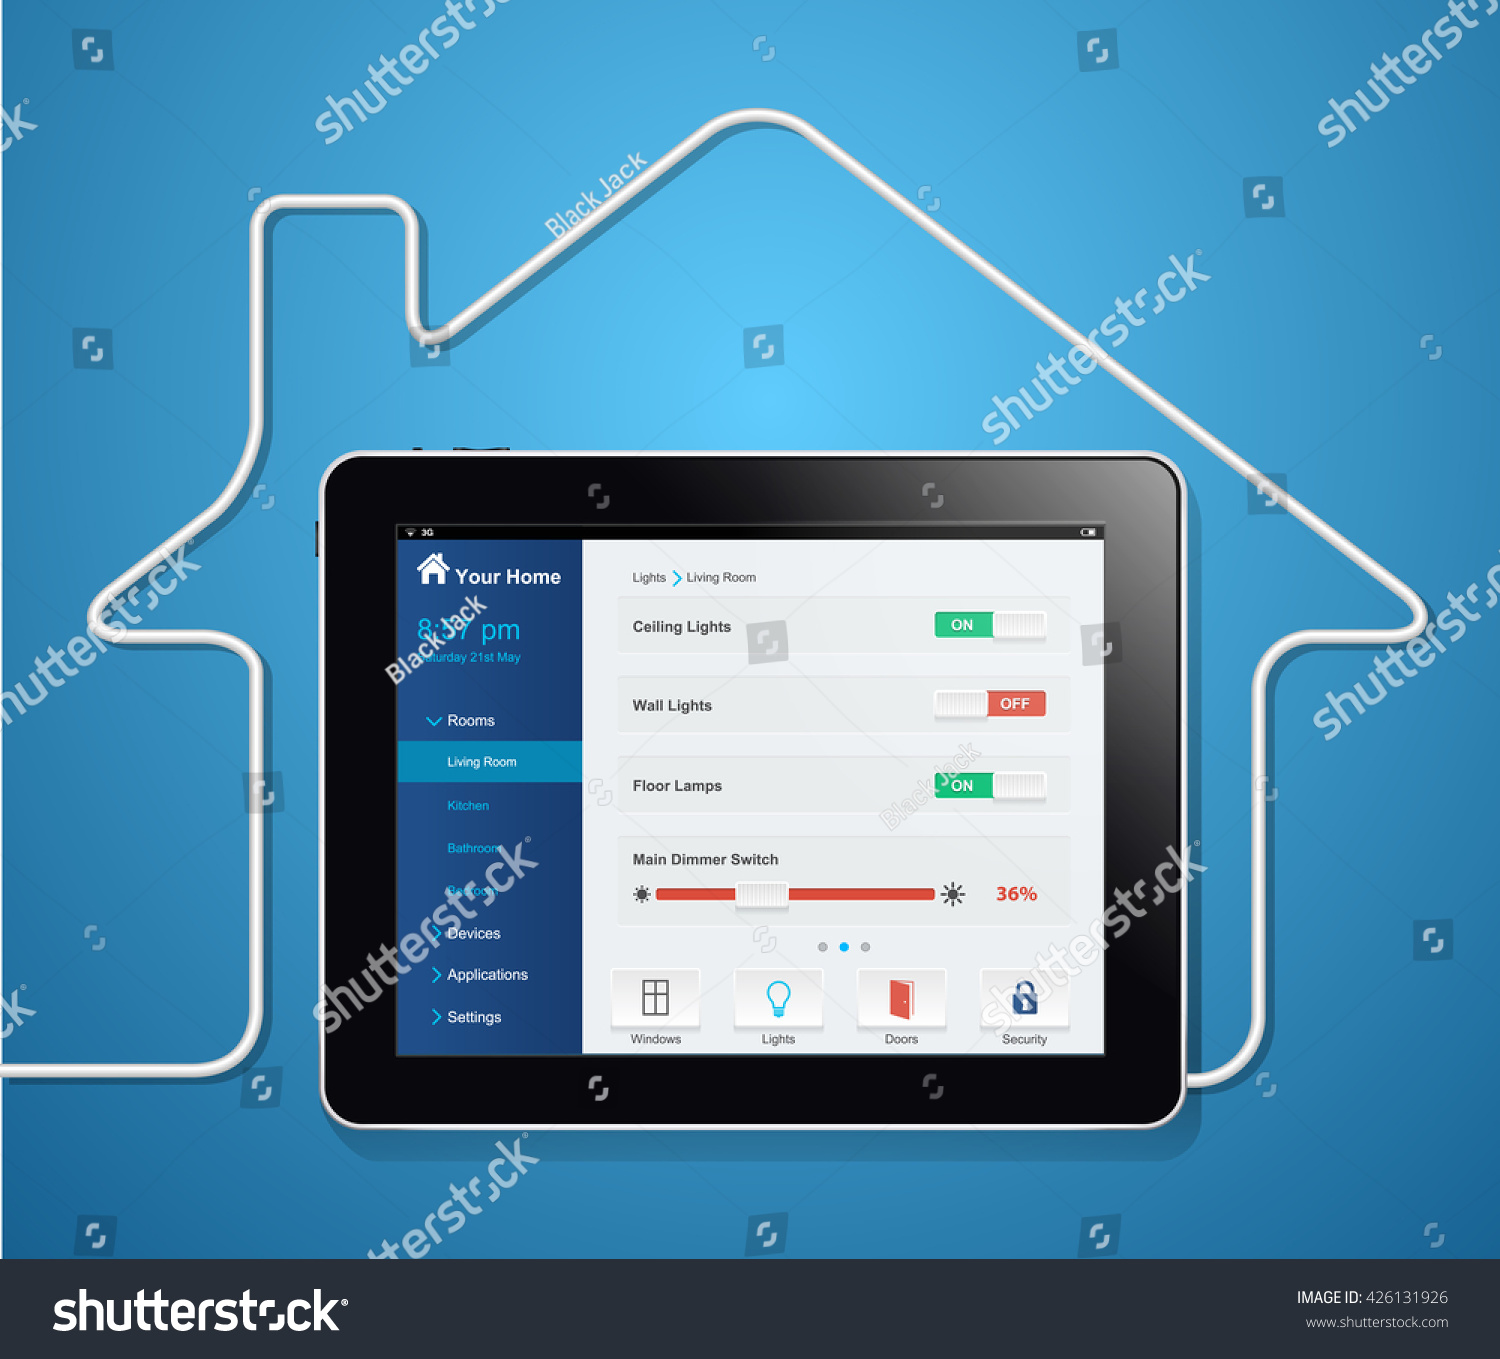 Light Automation Home Automation System Light Management Concept Stock Vector